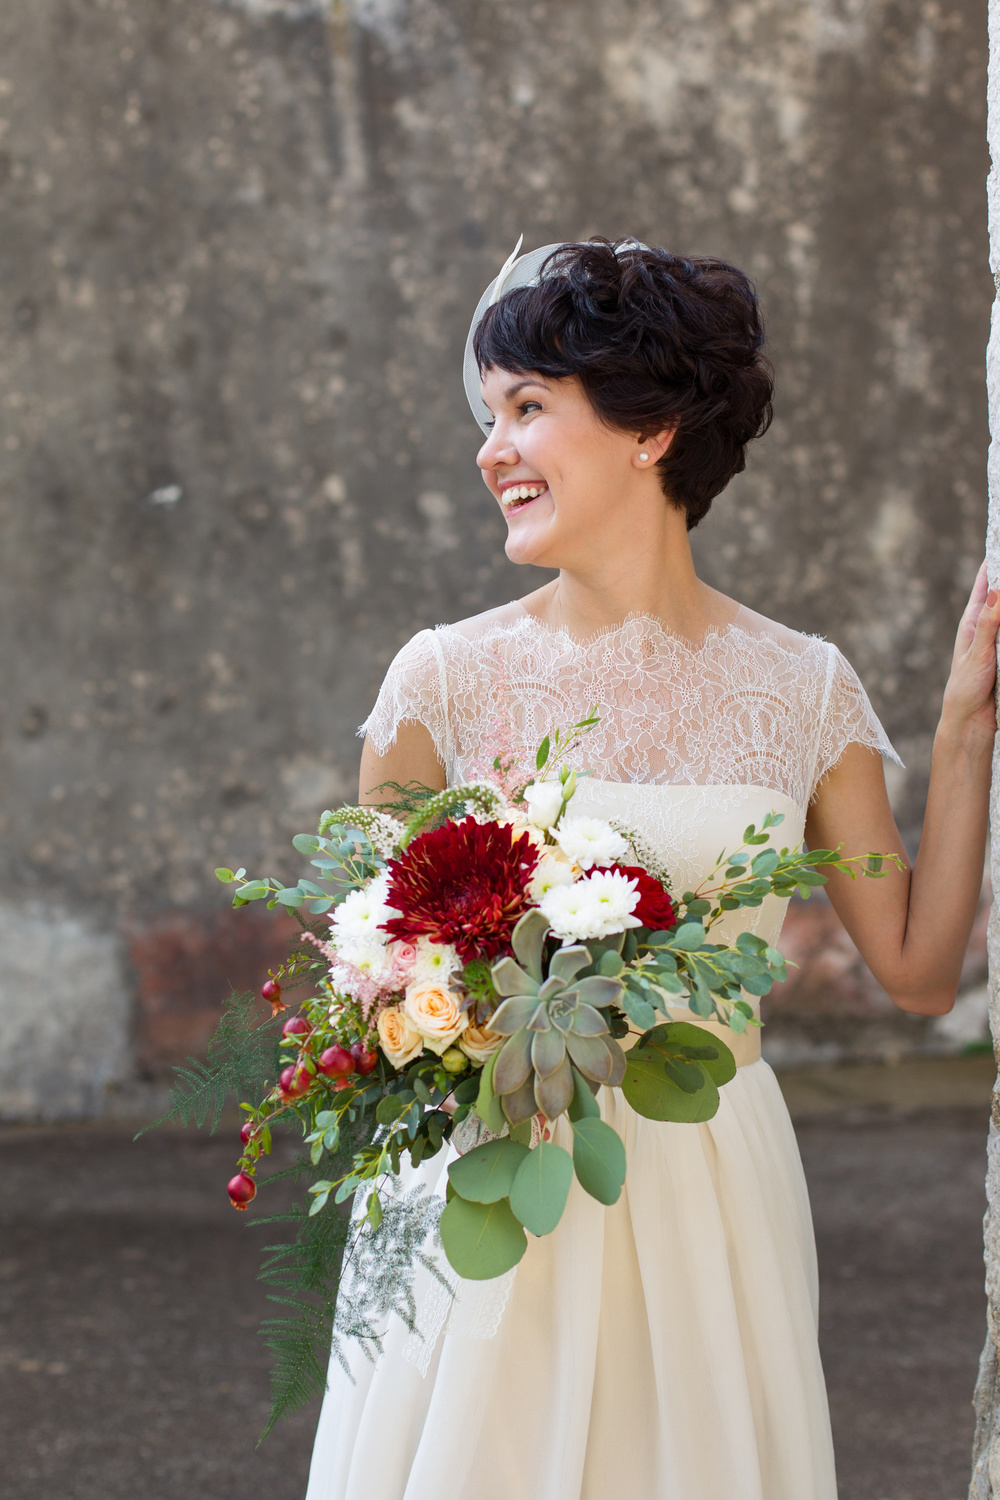 Pocketful of Sunshine Event Design: Columbia, SC | Boho Bride With Bright Red Bouquet